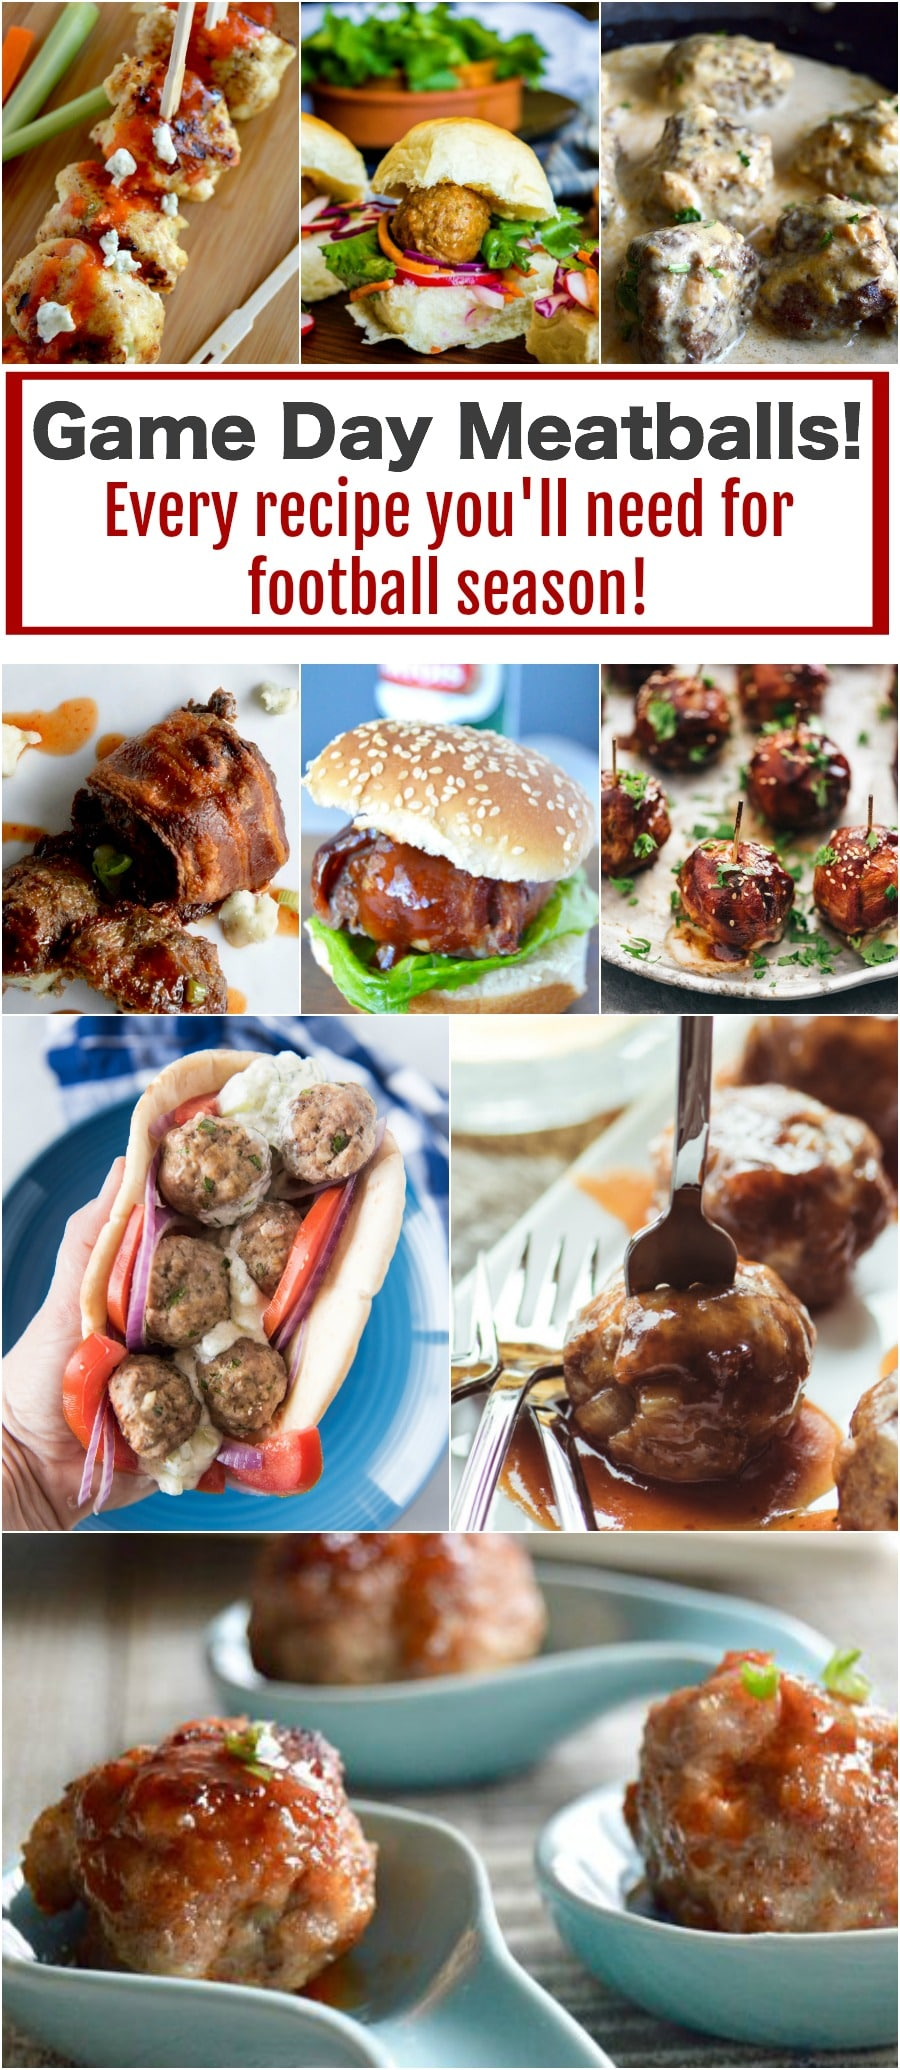 Game Day Food: Meatballs Roundup!  Game day Party food that everyone will rave about!  A round-up up of every meatball recipe you will need to keep everyone fed and happy while watching the game!